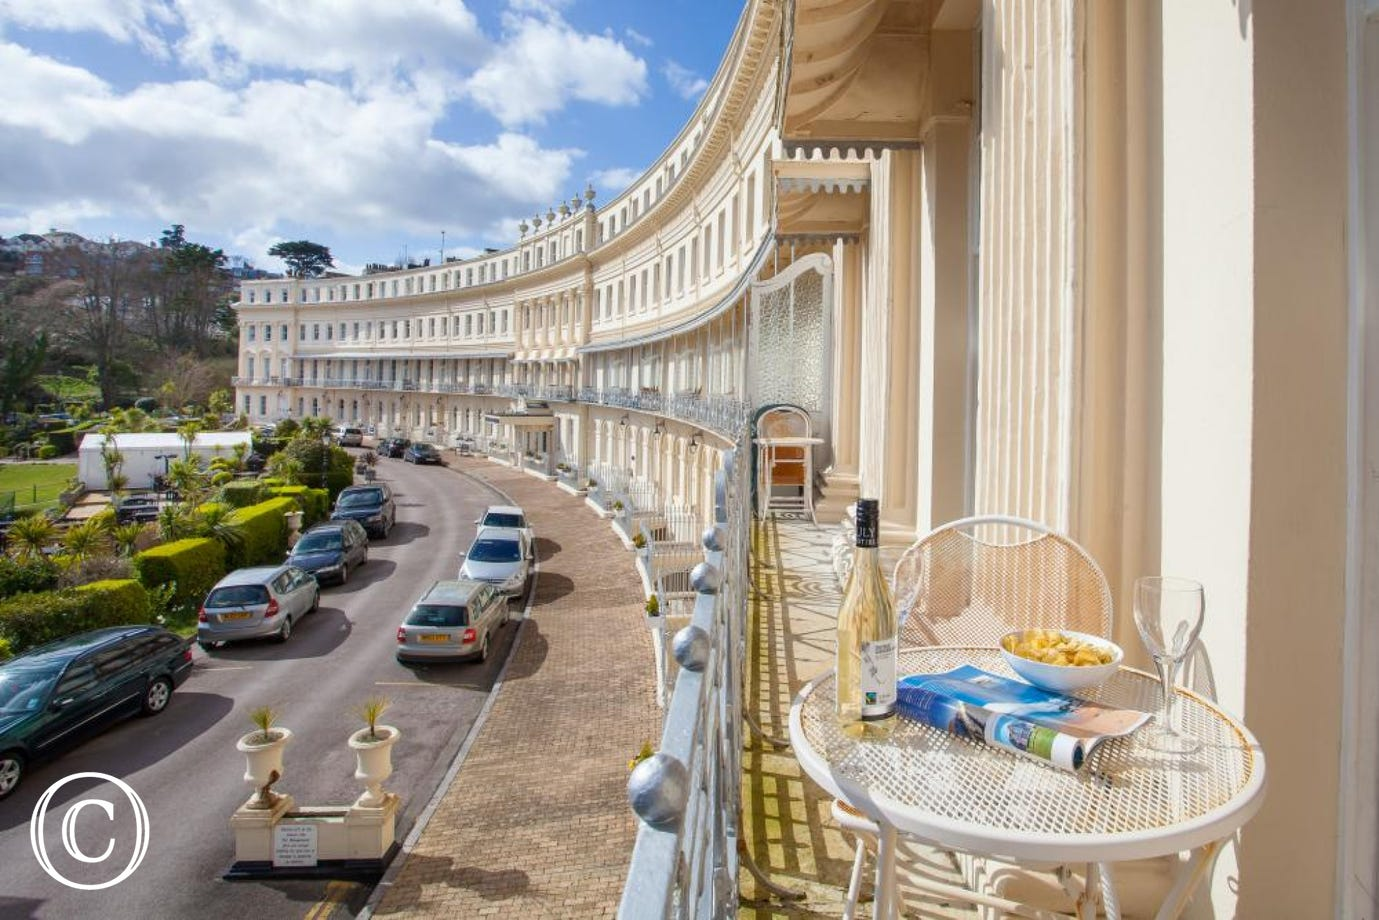 The House is at the Far End of the Iconic Hesketh Crescent in Torquay